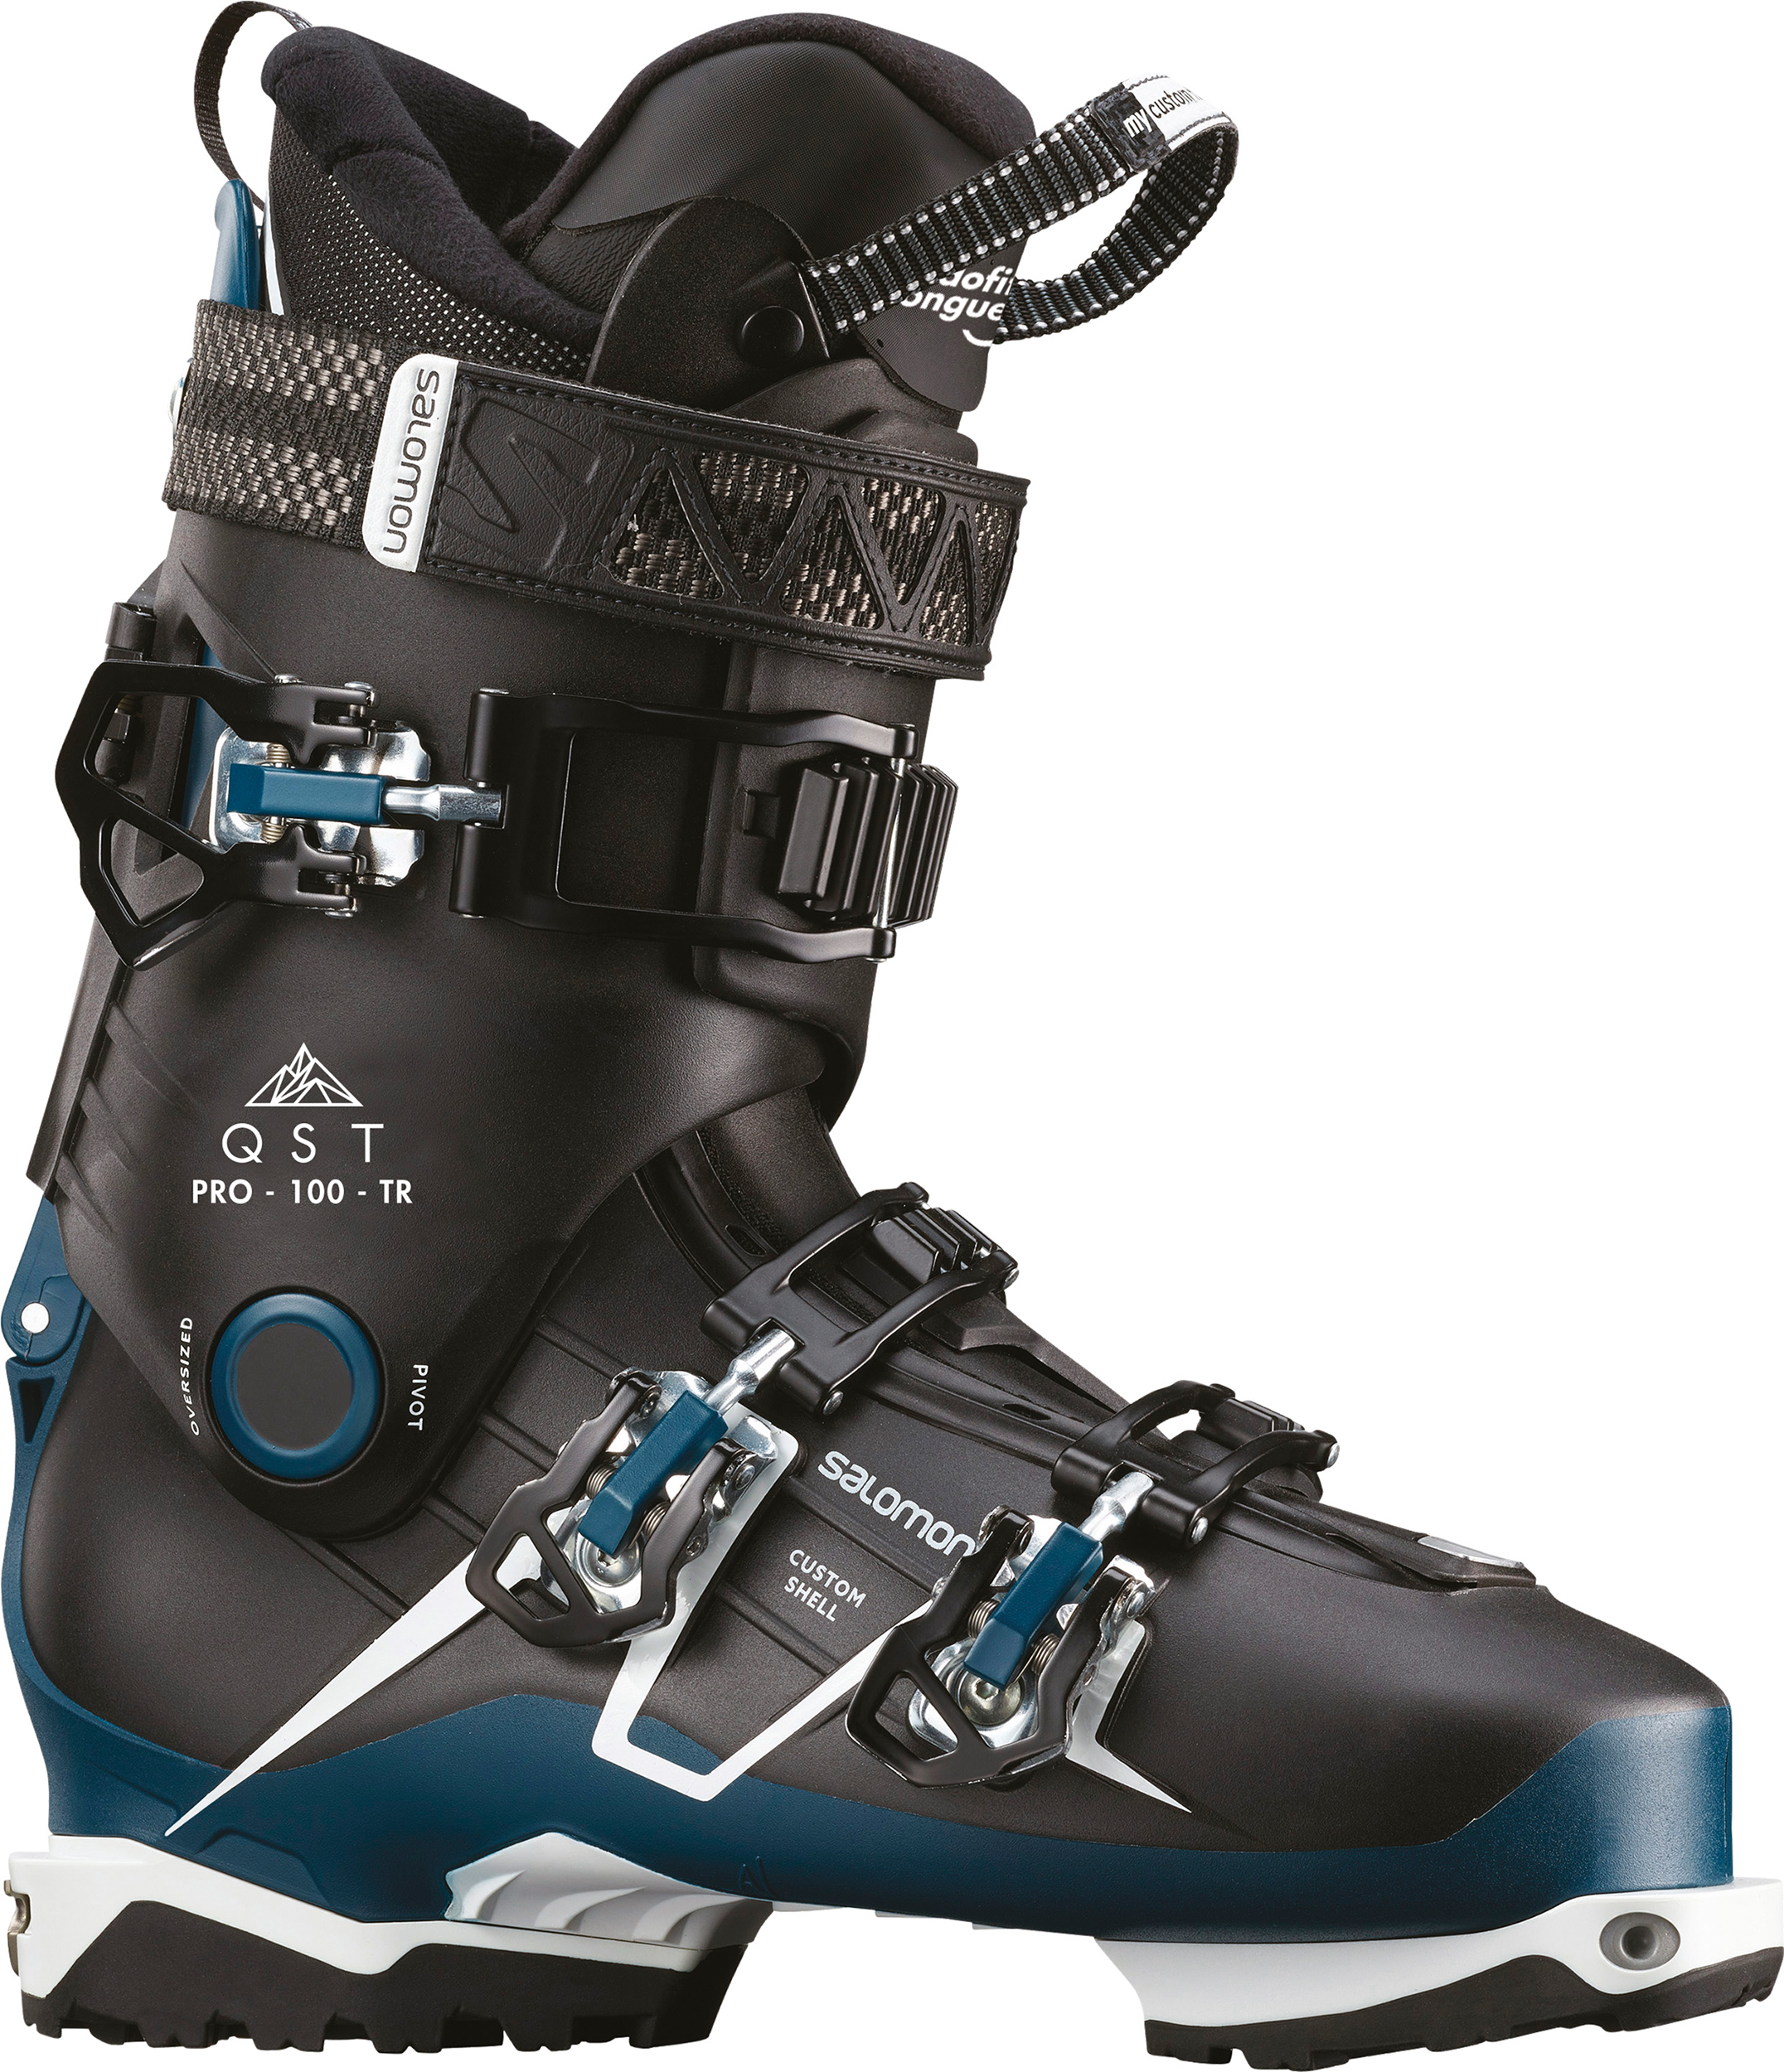 451298fb96e909 Downhill ski boots and accessories | MEC